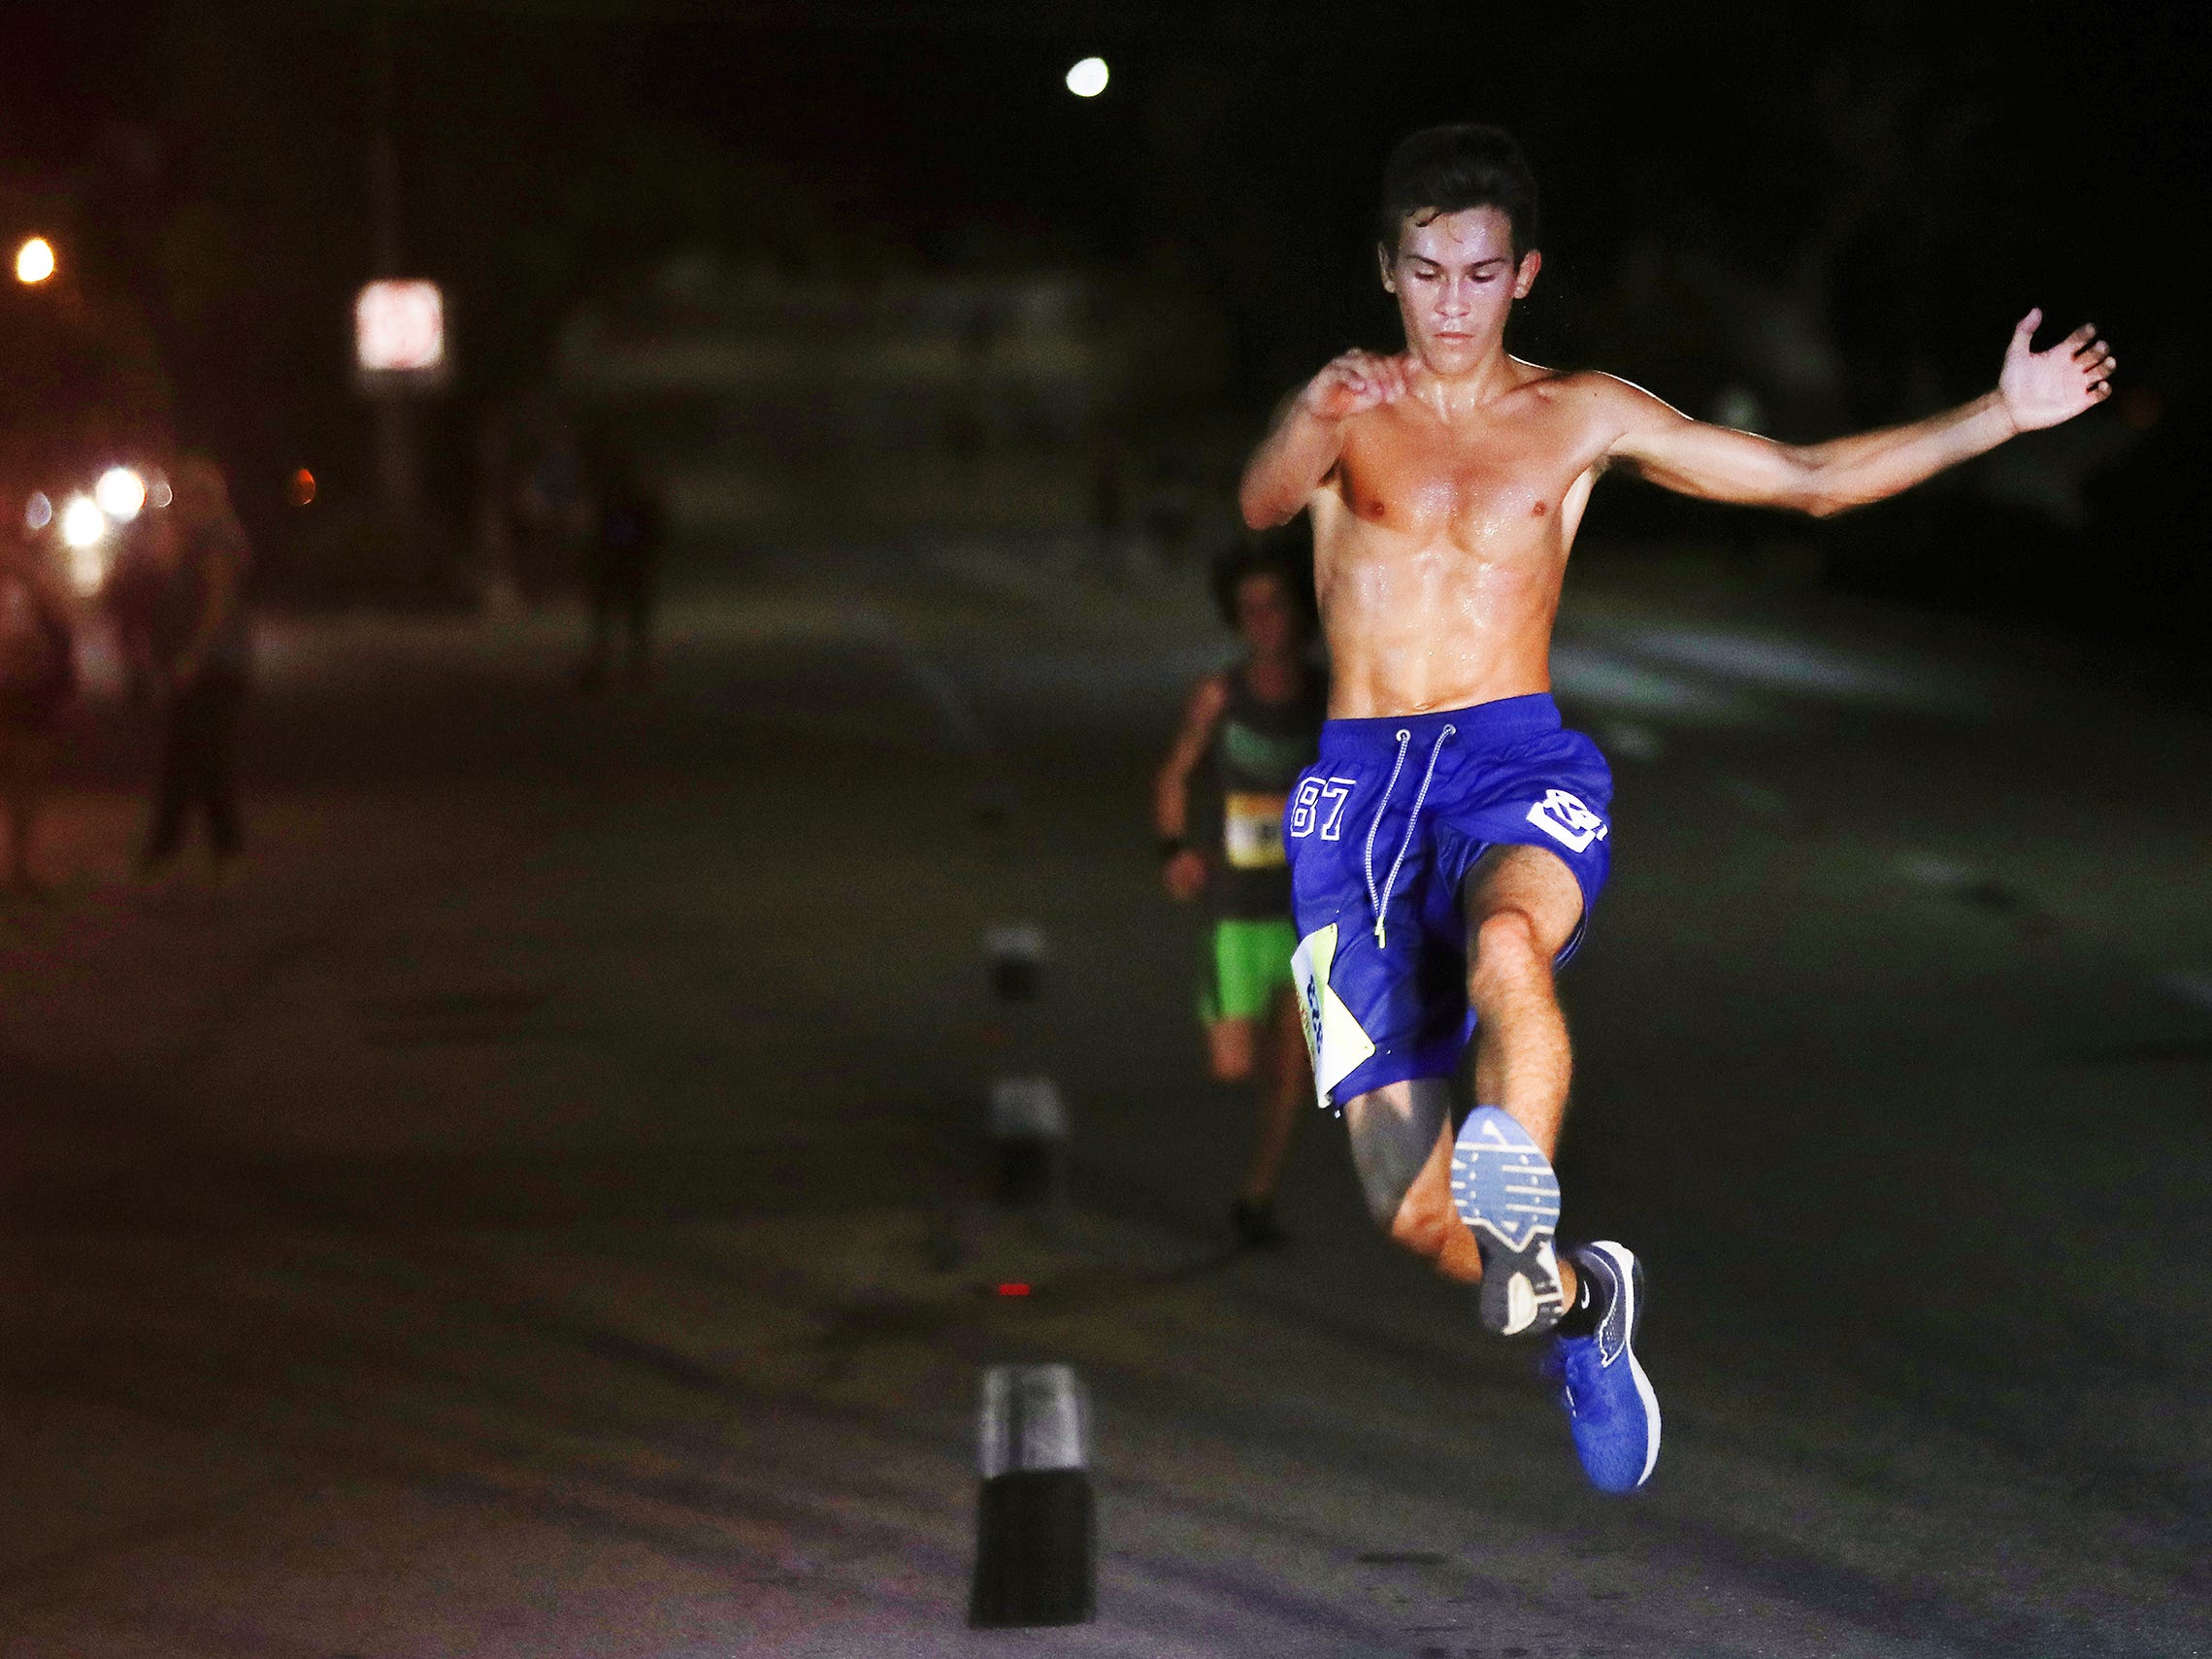 Ryan Hattemer, 15, competes in the Veteran's Day Midpoint Madness 5K recently in Fort Myers. Hattemer was among hundreds of runners and walkers honoring veterans in the annual race that benefits the Fort Myers YMCA.